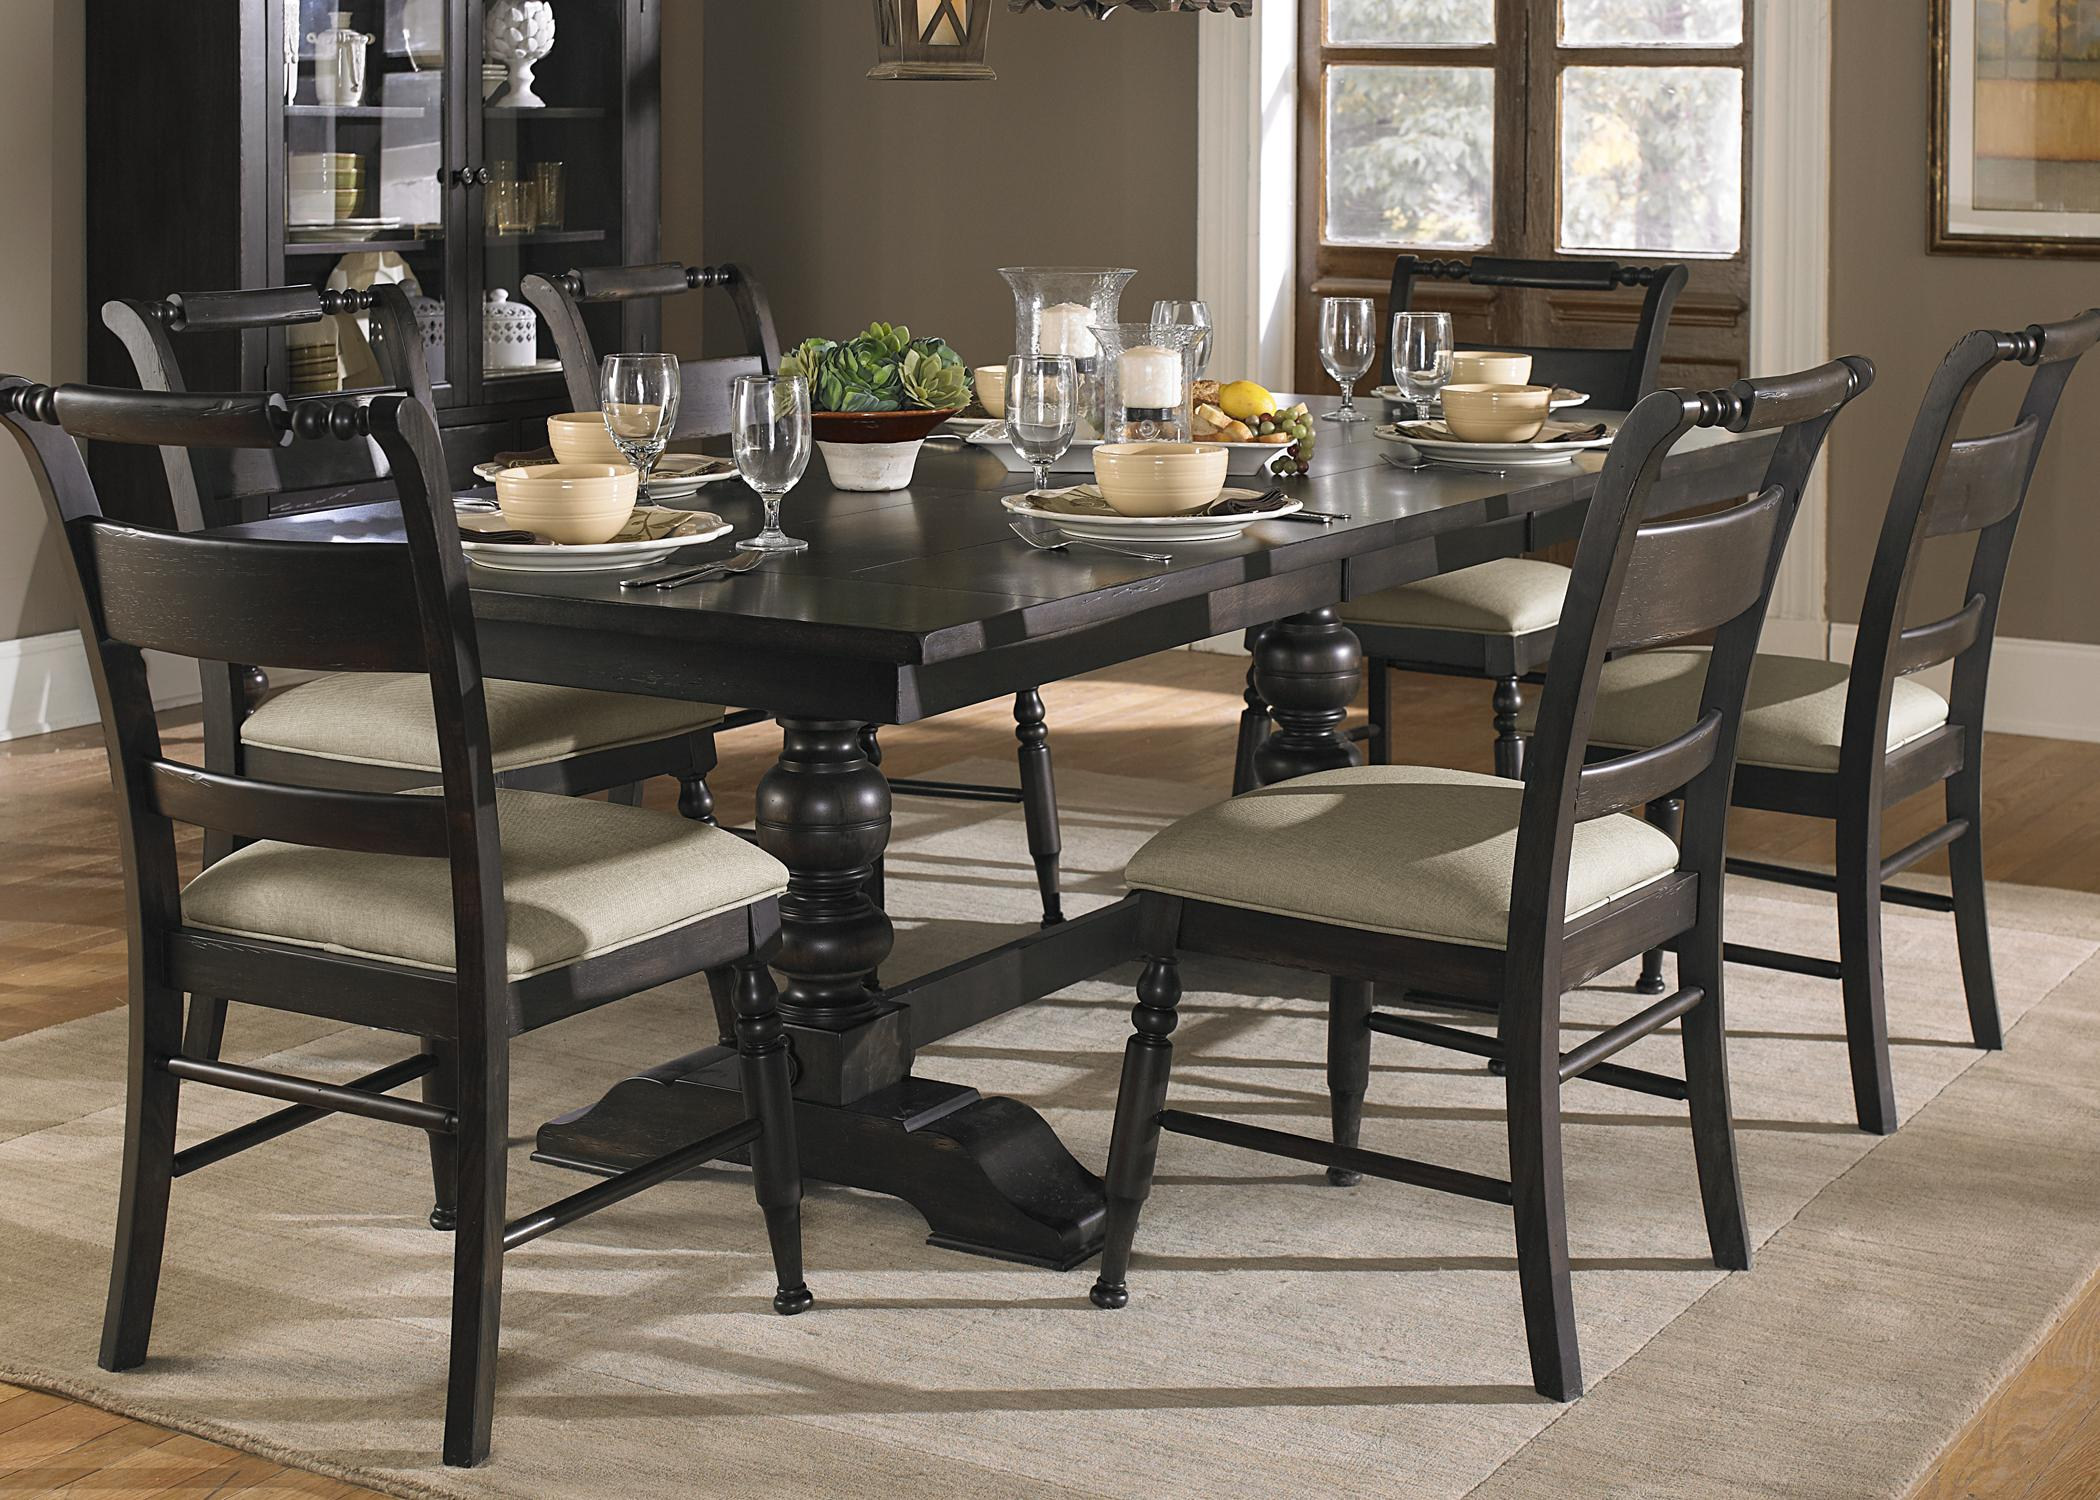 Dinning Room Table Set Liberty Furniture Whitney 7 Piece Trestle Dining Room Table Set